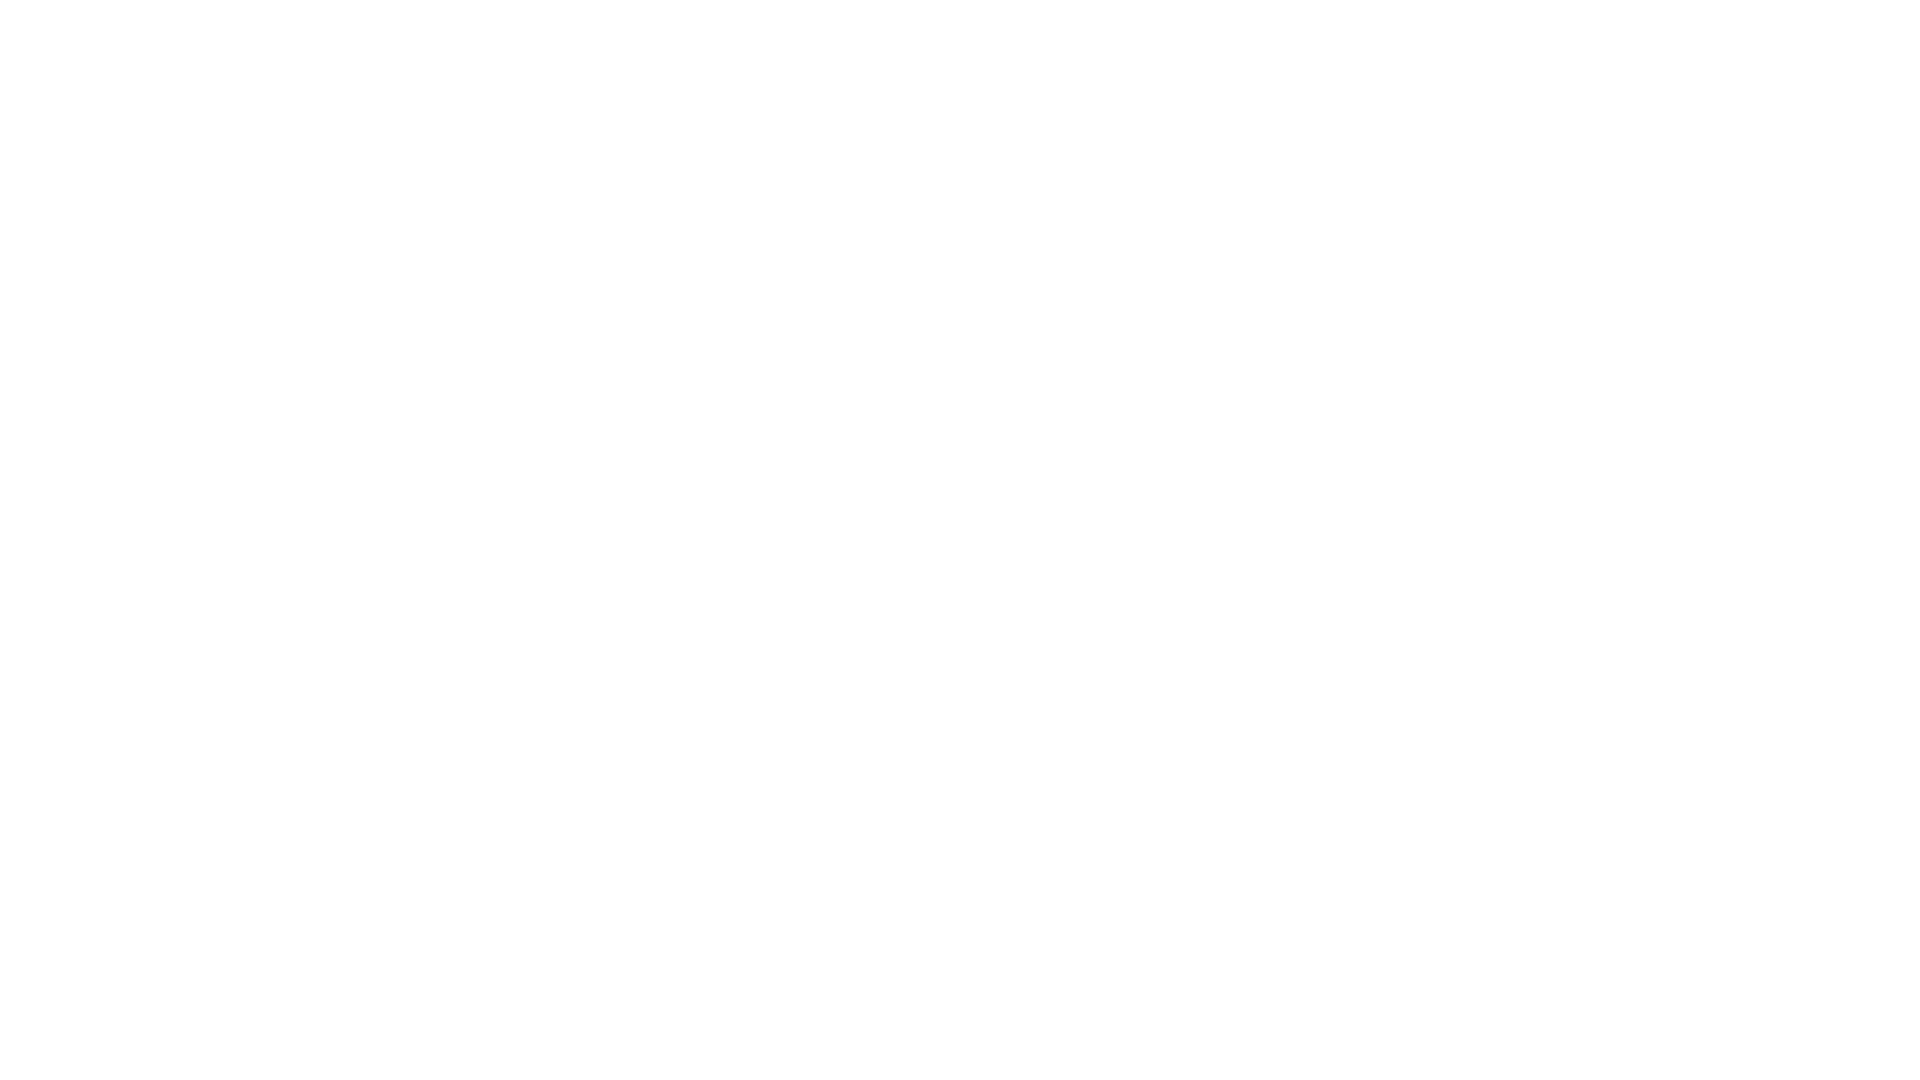 fizz is the credit card for college students